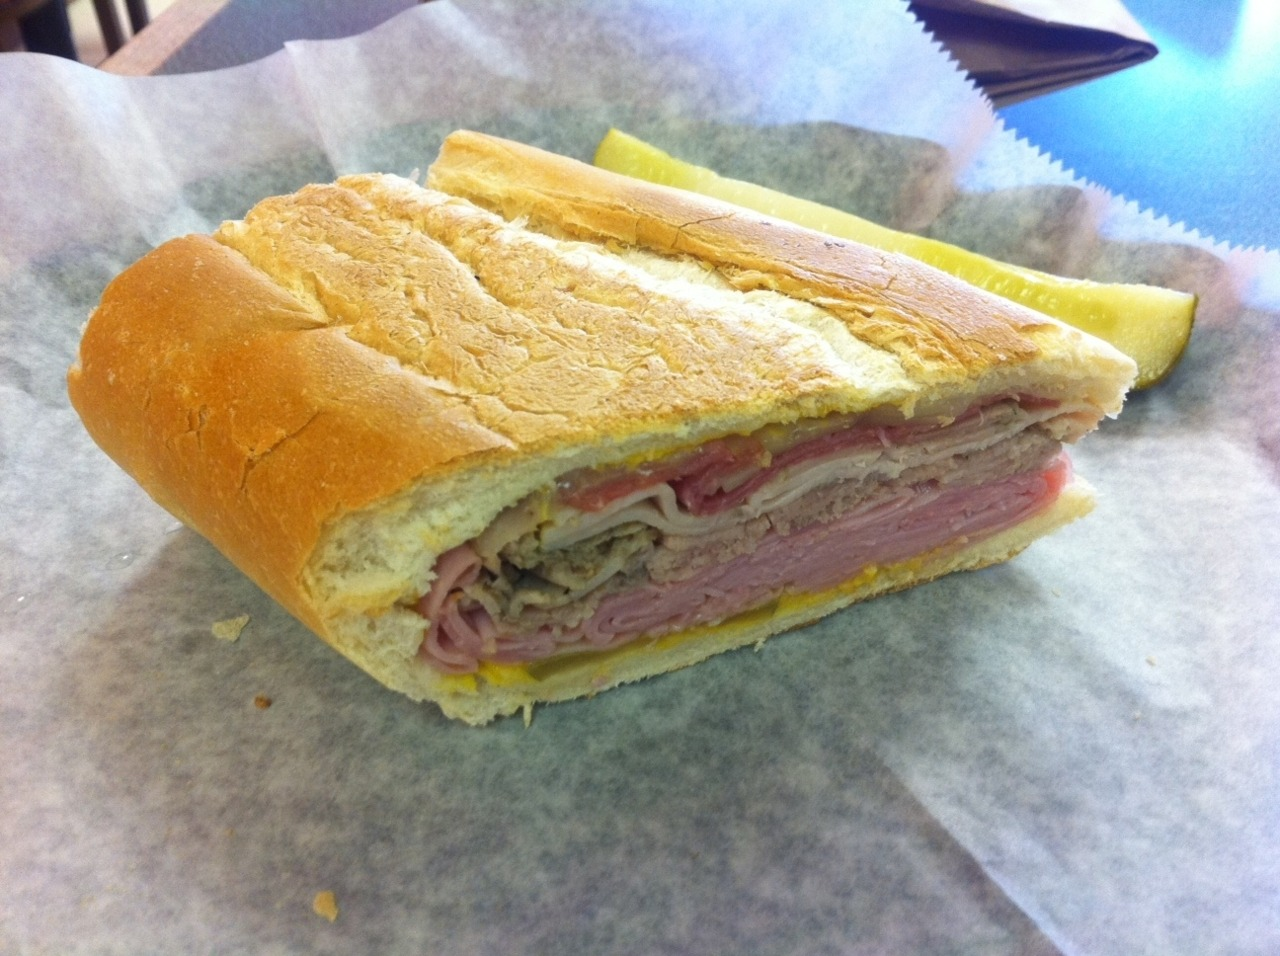 Cuban Sandwiches We Have Known Roving sandwich reporter Todd Sturtz checks in again, this time from Crazy Ray's on Kennedy Boulevard in Tampa:  Crazy Ray's Deli opened in October 2010 in the space formerly occupied by Moxie's, and offers a plethora of sandwiches. And I mean a plethora. At least 30 or more (including some breakfast sandwiches), with a variety of sizes and ingredients. I was driving by on my way to get a haircut and Ray's colorful orange signs caught my attention, so I stopped to investigate.The decor was bright and colorful, not necessarily tasteful - unless of course you're orange and yellow is your thing, in which case you'll LOVE it. Although labeled a deli, I don't recall seeing any deli counter inside, more like a typical sandwich shop with a big menu on the wall and a soda fountain off to the side with napkins and condiments keeping it company.Many of Ray's sandwiches are on Cuban bread, which I was told is sourced daily from the Casino Bakery (Ybor City). Not surprisingly, the Cuban sandwich I ordered ($6.49) also came on said bread, and per usual, I requested it well pressed, sans lettuce/tomato/mayo. As you can see from the picture, the sandwich had a generous amount of meat on it, the most discernable of which was the thin-sliced ham when biting through the crunchy shell into the soft layers of bread, meat, and cheese. When putting this Cuban up against my recent visits to Wright's & Floridian, I must concede it would scarcely be a contender, even though it was the most meatily adorned of the three. The ham really stole the show, in a briny sort of way (not bad mind you, this would be quite enjoyable to one with a penchant for ham sandwiches and/or salt), while most everything else in the sandwich took a back seat. The salami was nowhere near as prevalent as it was in Floridian's (and I really would have loved it if the Ray's bread had a tiny bit of butter on it like Floridan), and the roast pork was in attendance, but hardly with the presence it had in Wright's.I'd go to Ray's again, but to explore the rest of the menu, not for the Cuban. Especially not with the Floridian a literal stone throw away